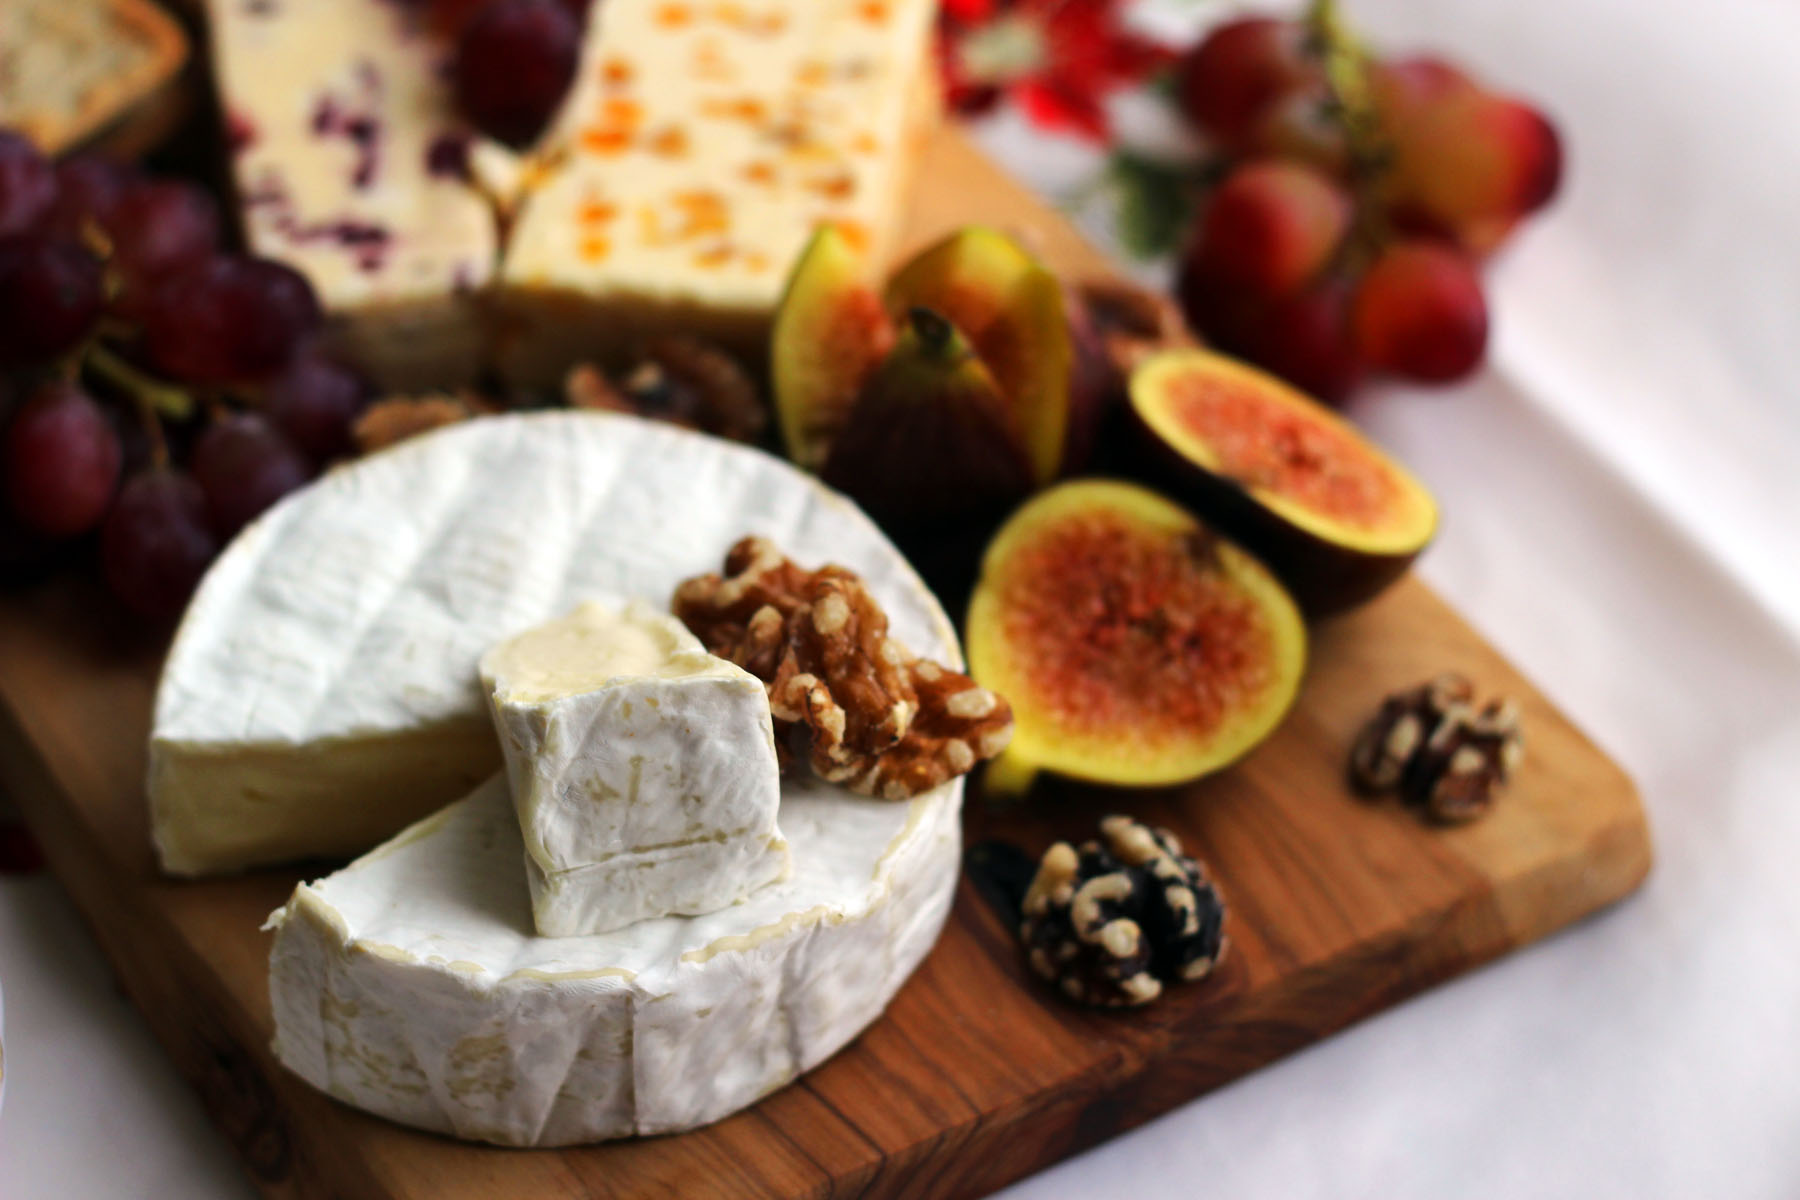 Plant-based cheeses are growing in popularity and showing up on grocery store shelves across the U.S. Photo: supperinthesuburbs.com